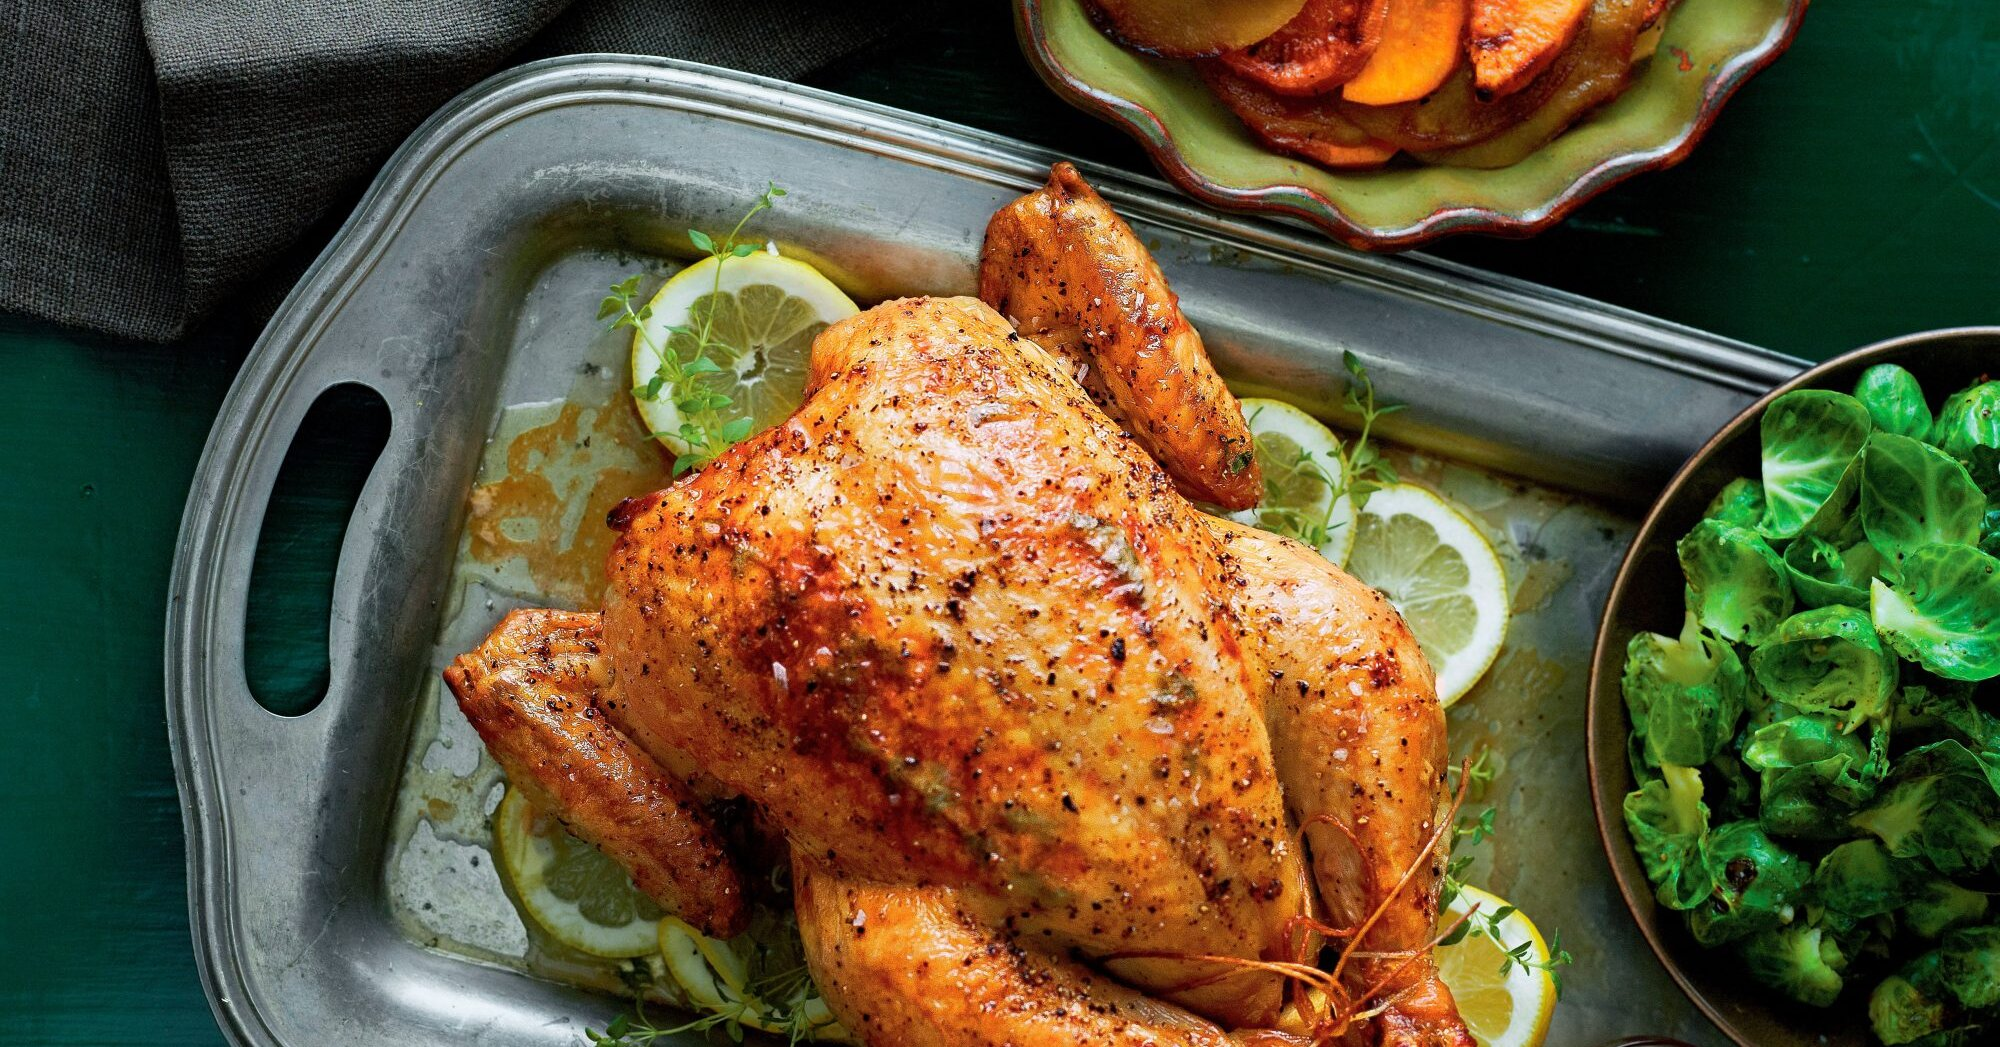 Why I Roast a Whole Chicken Every Week